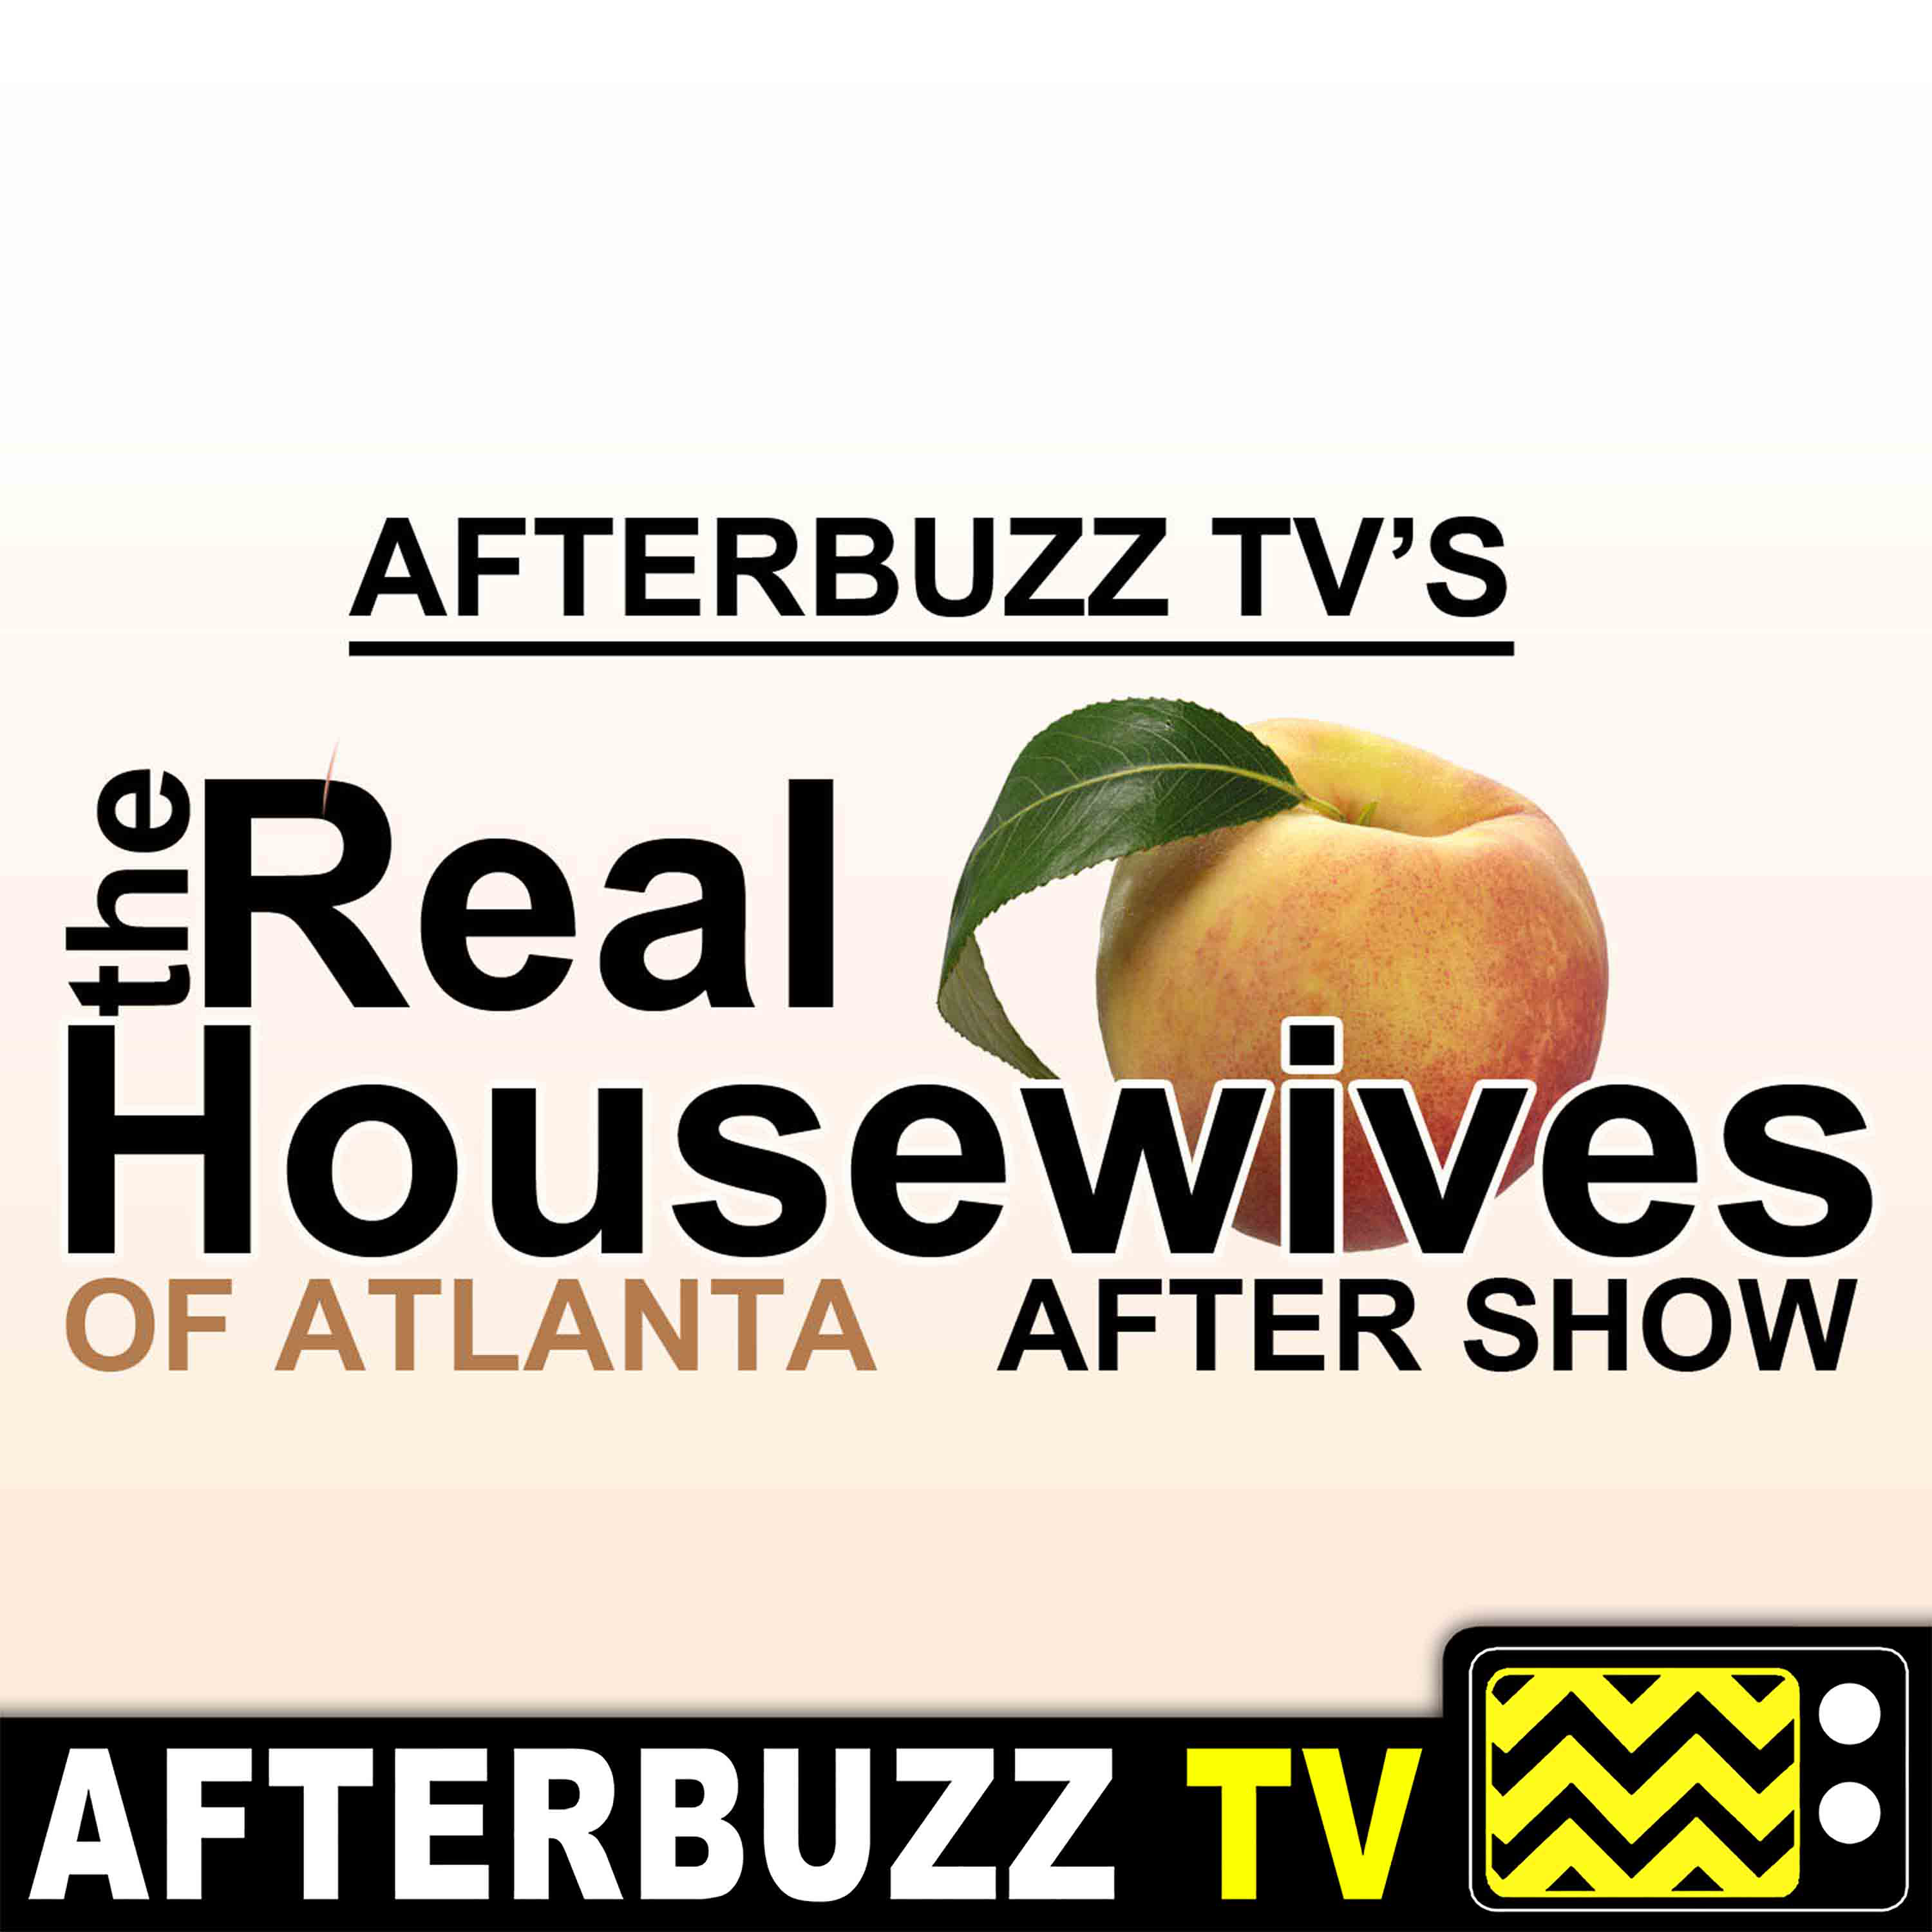 Real Housewives of Atlanta Reviews and After Show